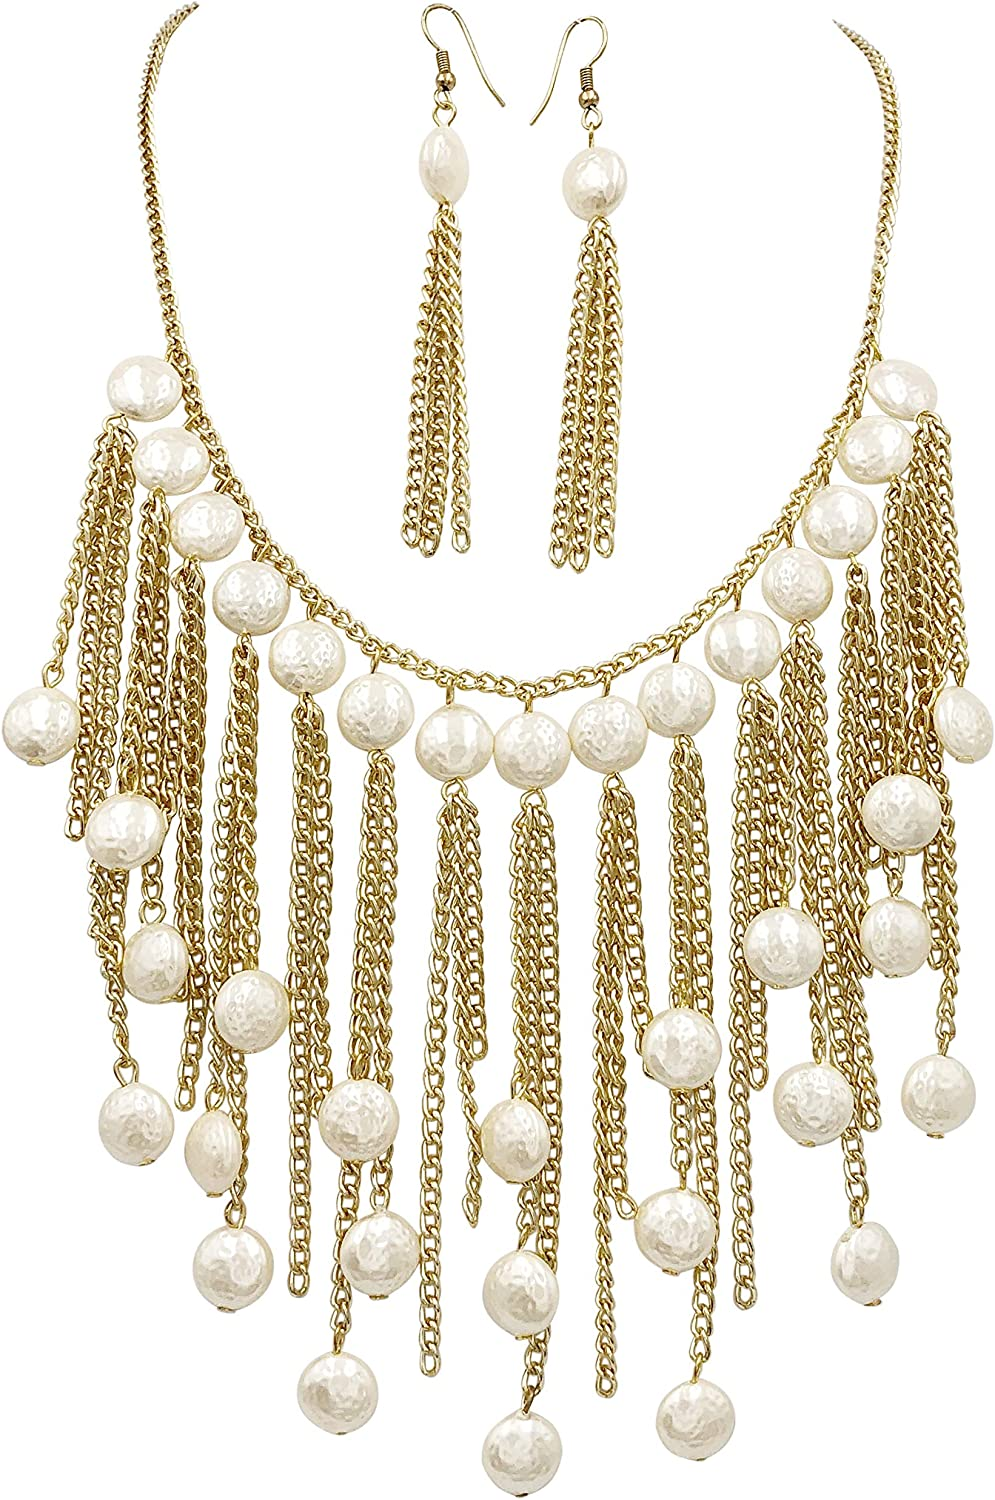 Gypsy Jewels Cascading Imiation Pearl Beaded Fringe Dramatic Unique Boutique Style Gold Tone Chain Necklace